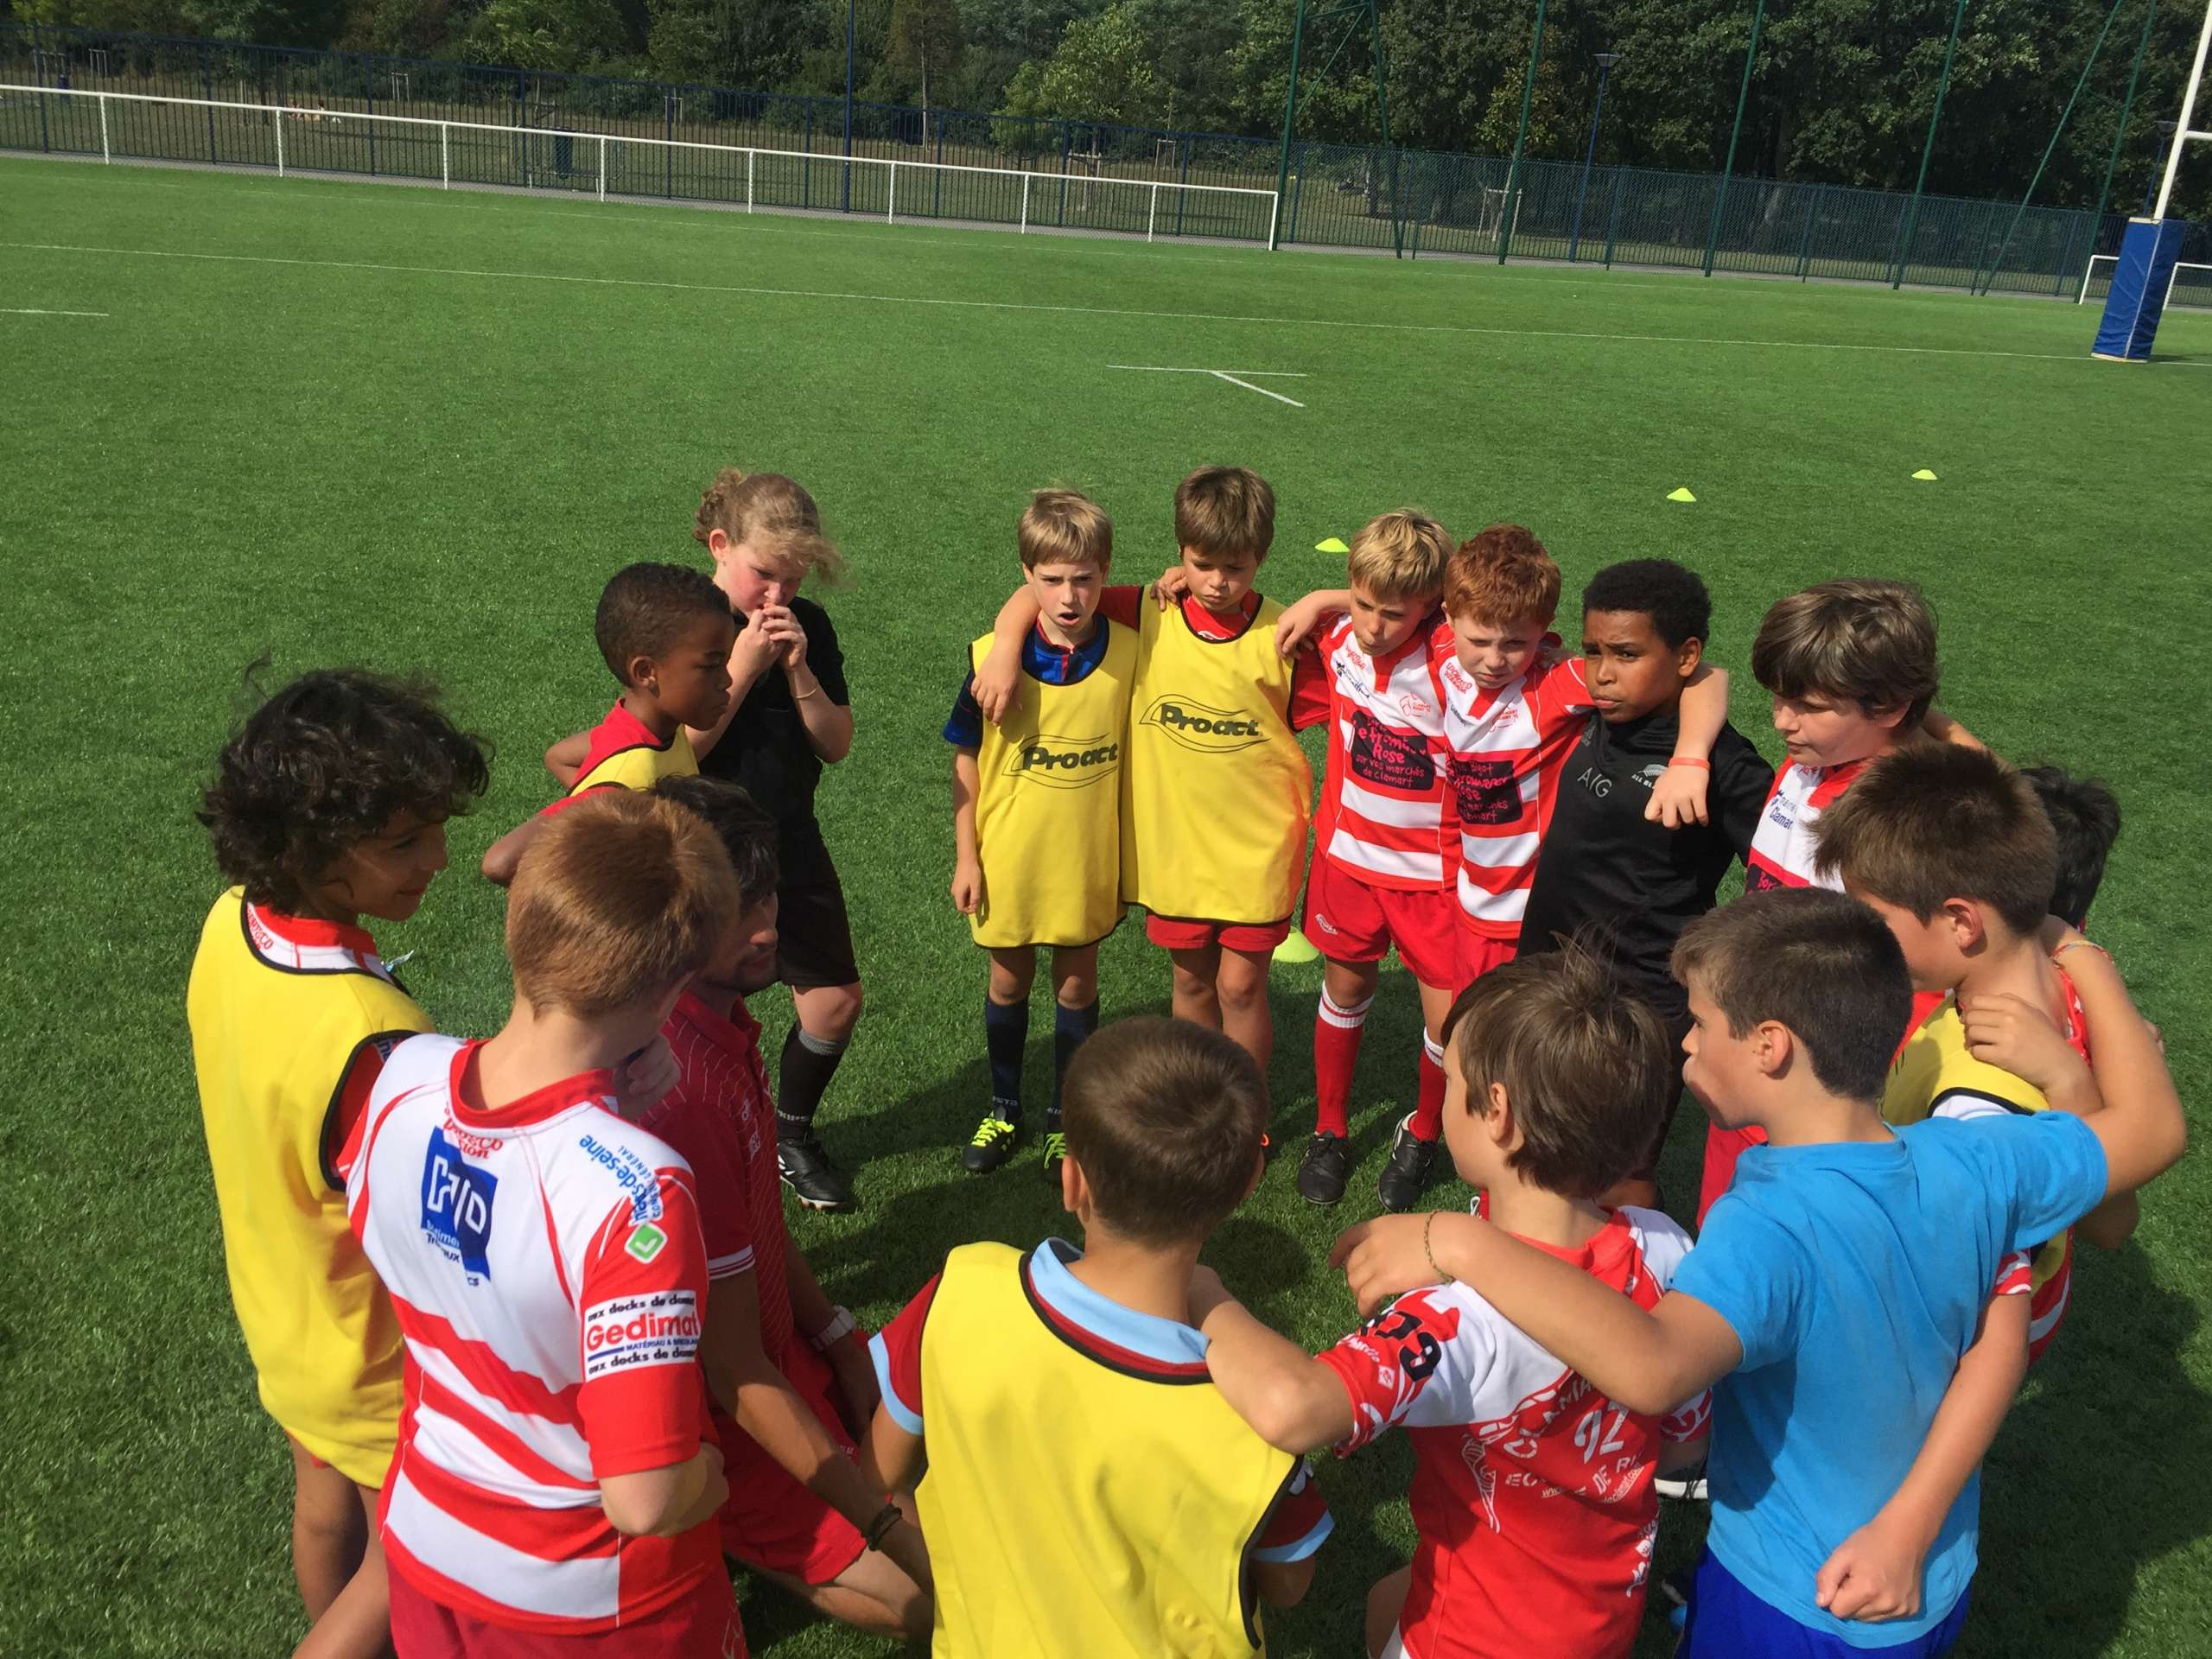 entrainements-ecole-de-rugby-clamart-rugby92-4